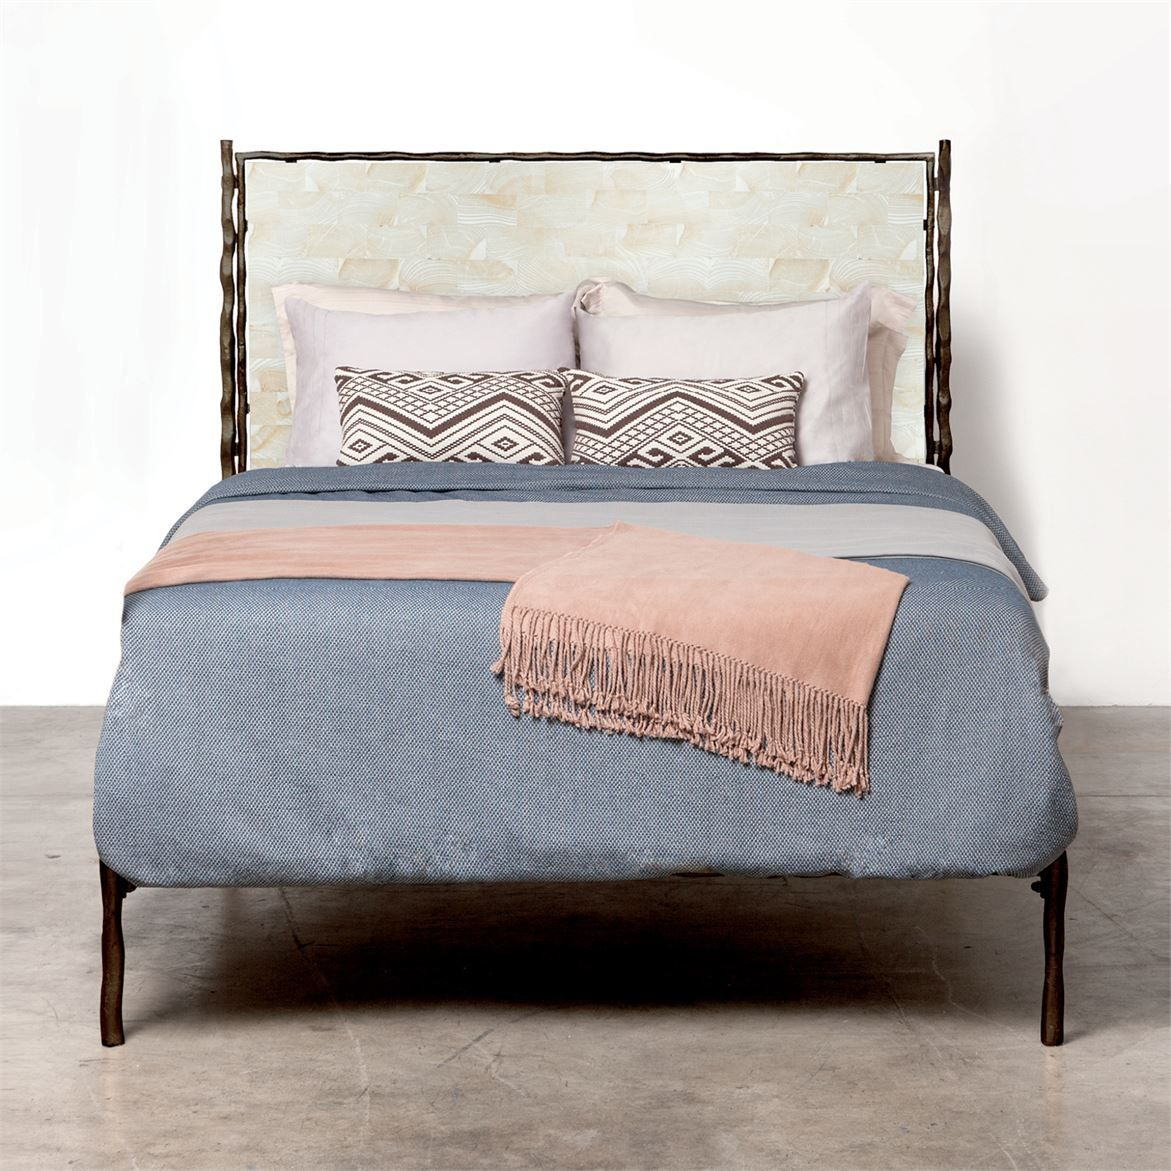 Made Goods Iron bed frame, Bed furniture, Iron bed